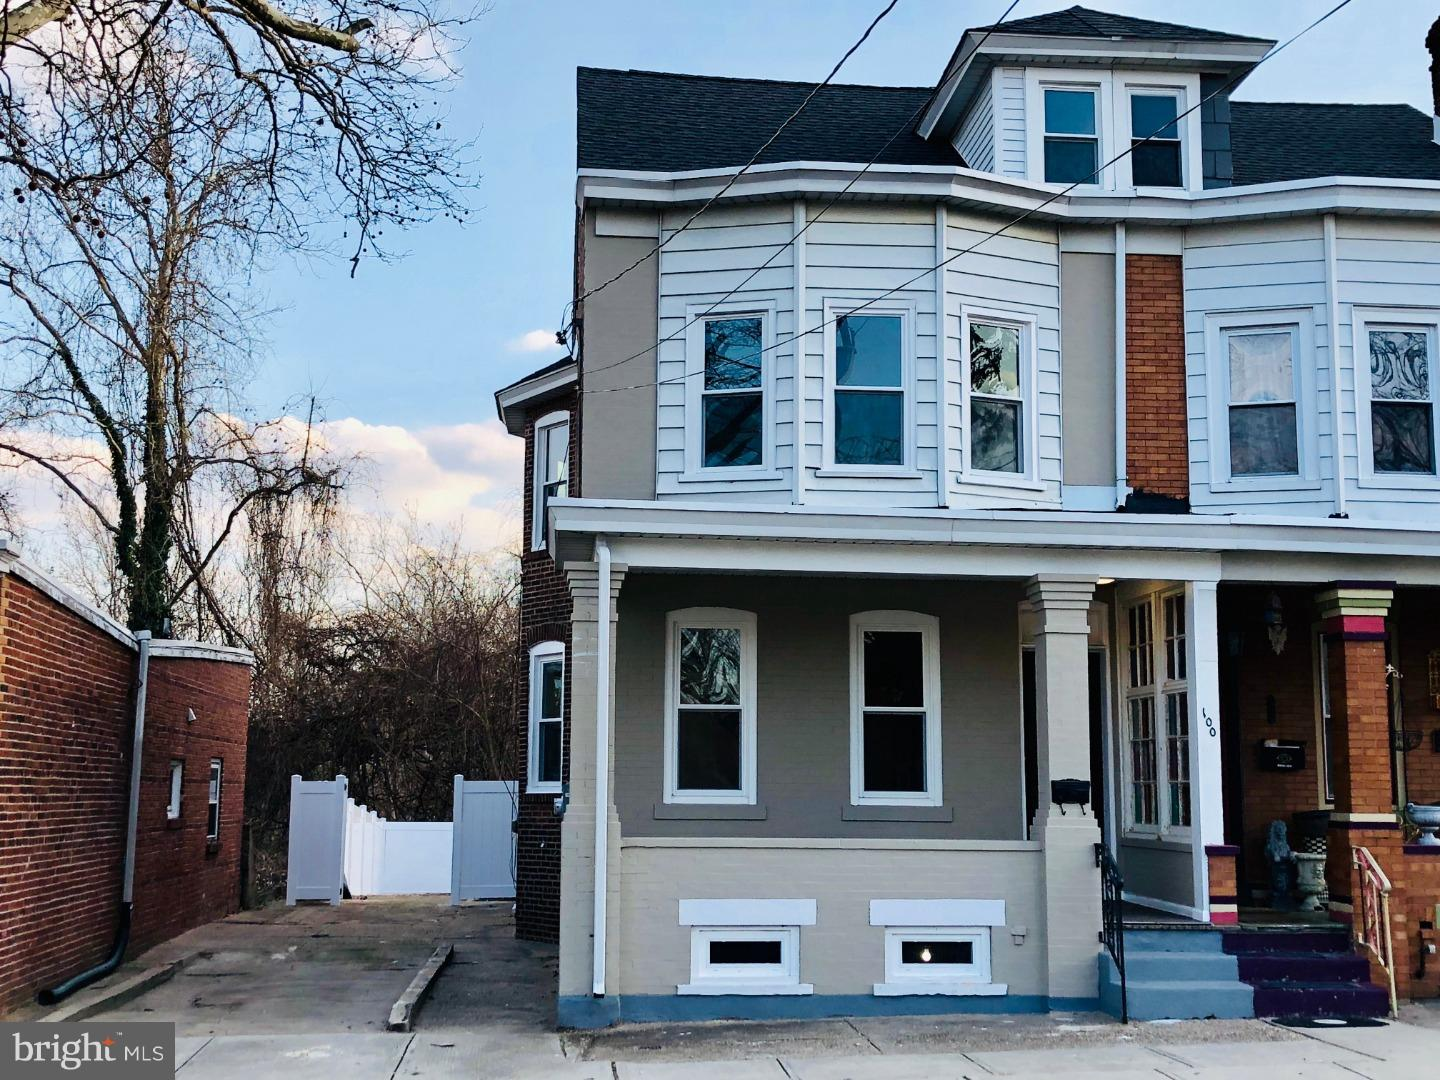 Single Family Home for Sale at 100 NORMAN Avenue Roebling, New Jersey 08554 United States